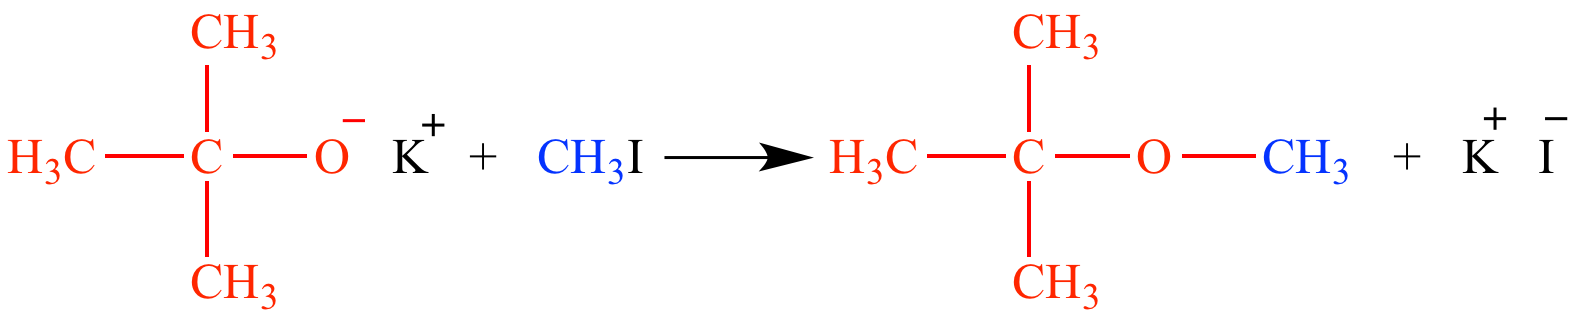 williamson ether sythesis The williamson ether synthesis is the easiest, and perhaps the fastest, way to create ethers introduction williamson ether reactions involve an alkoxide that reacts with a primary haloalkane or a sulfonate ester.